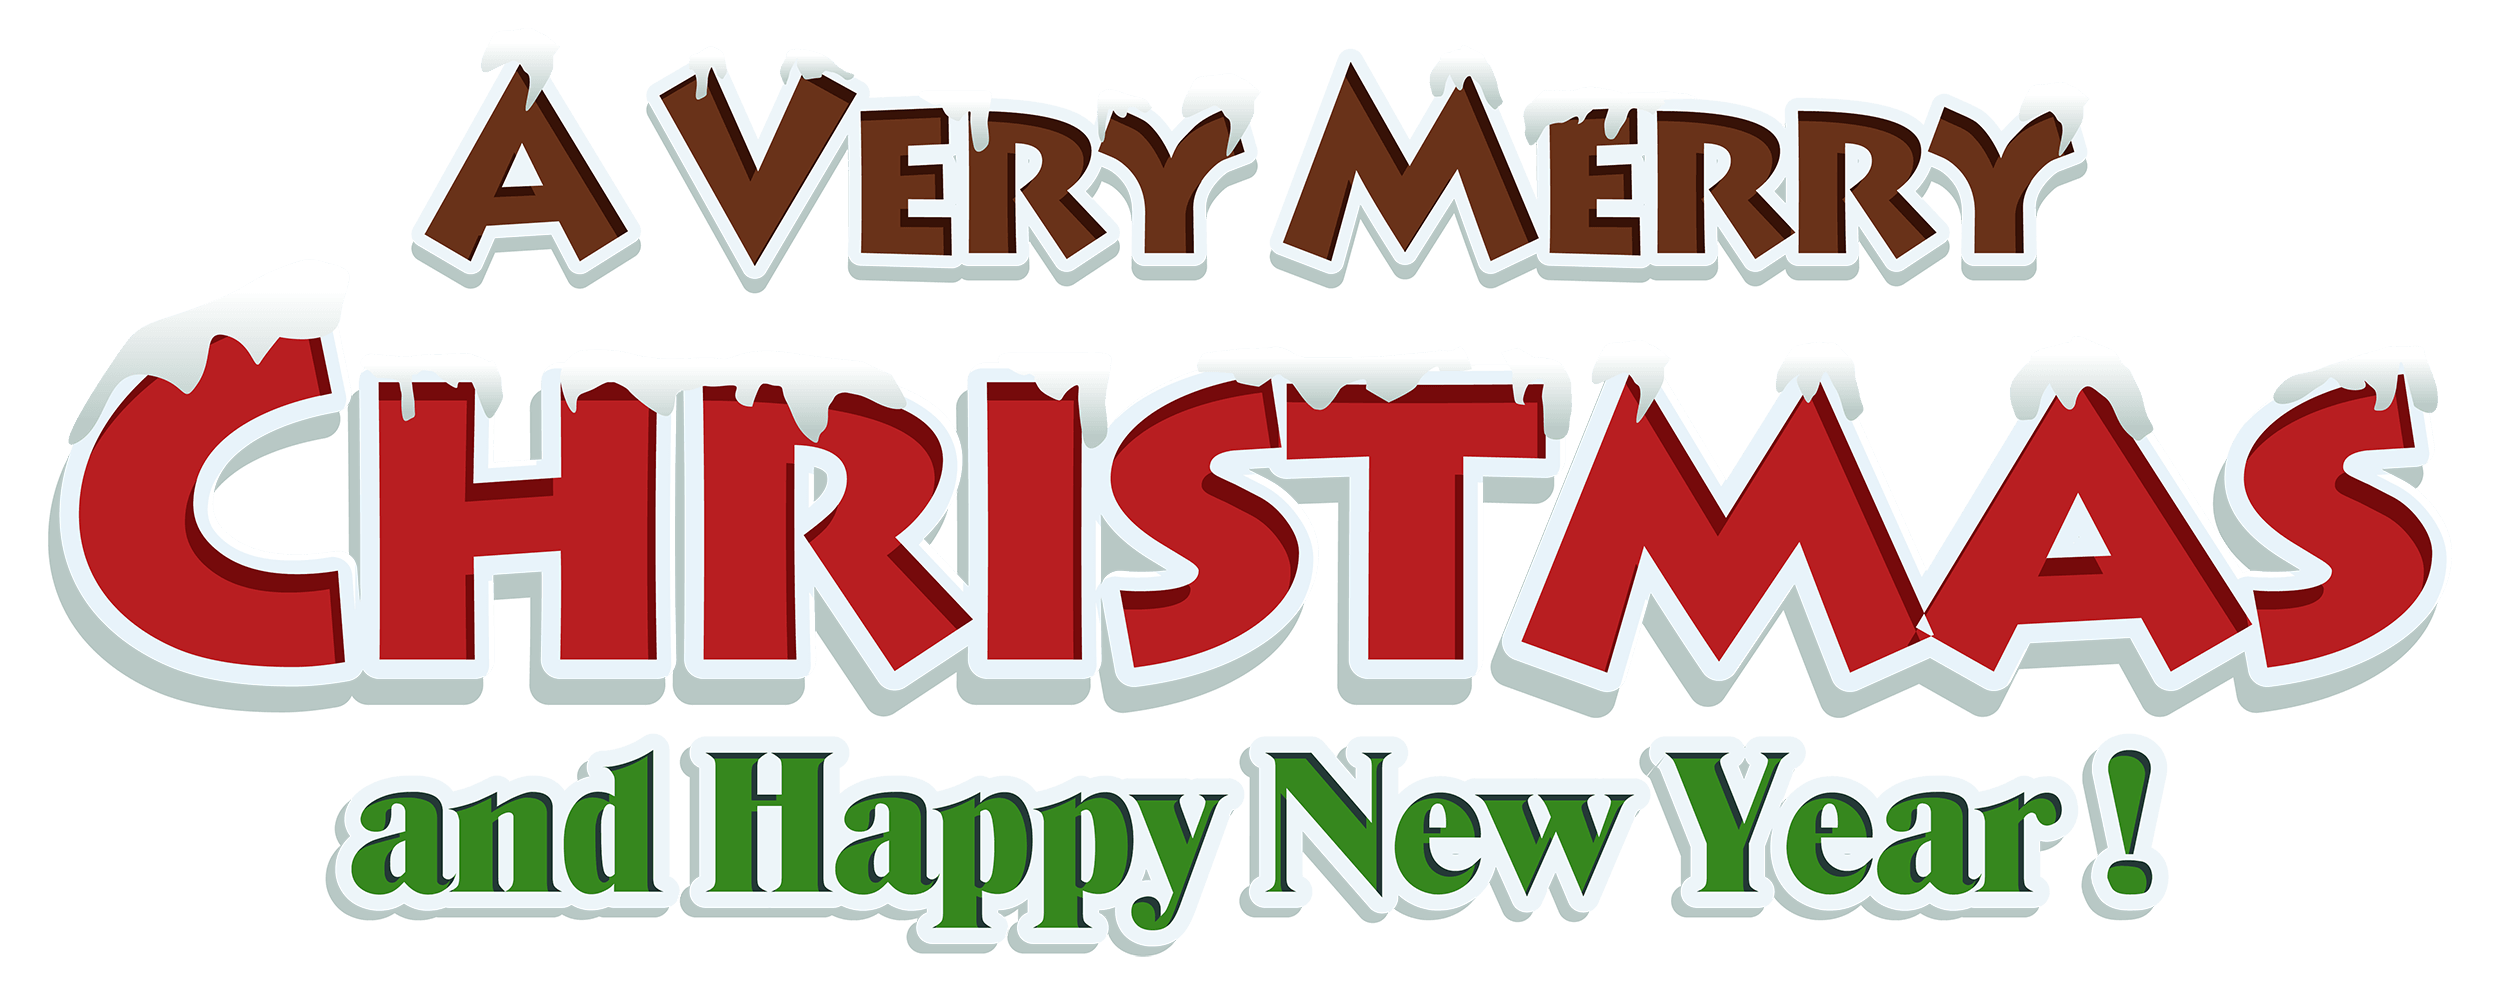 Christmas And Happy New Year Clipart